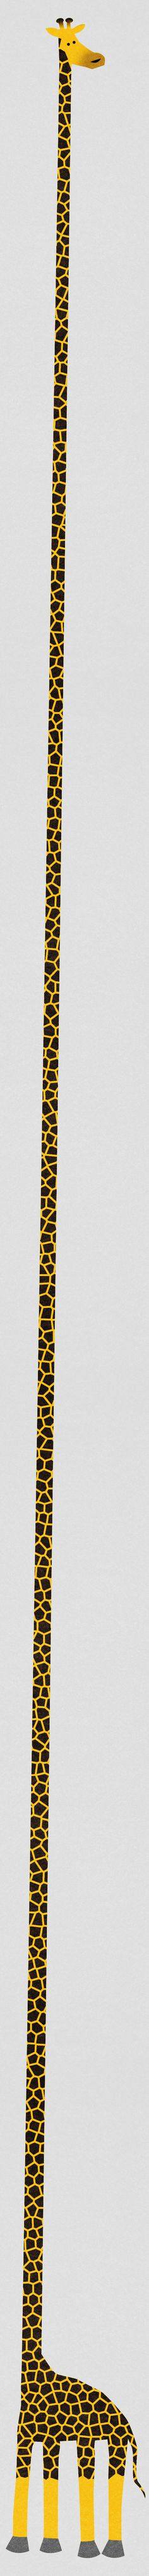 Giraffes are my favorite.